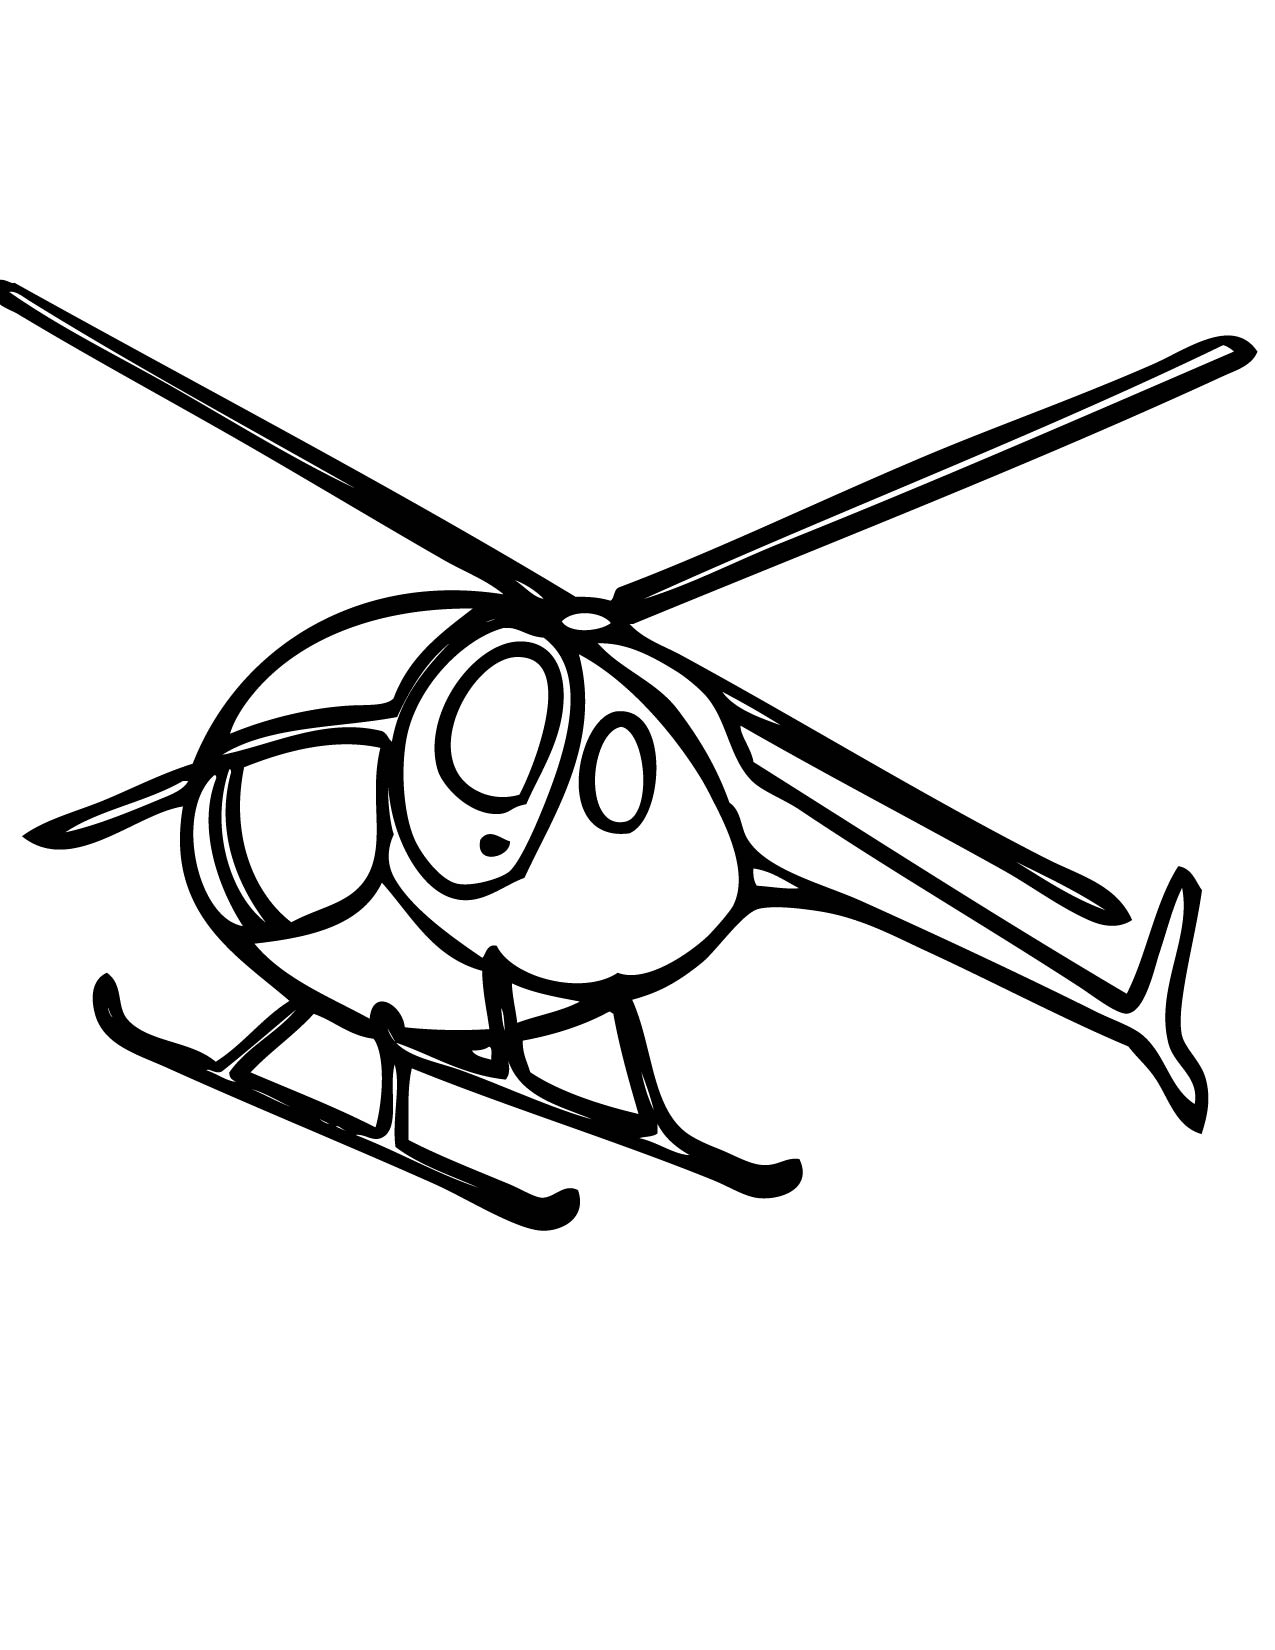 1275x1650 Helicopters With A Small Form Factor And Modern Helicopters